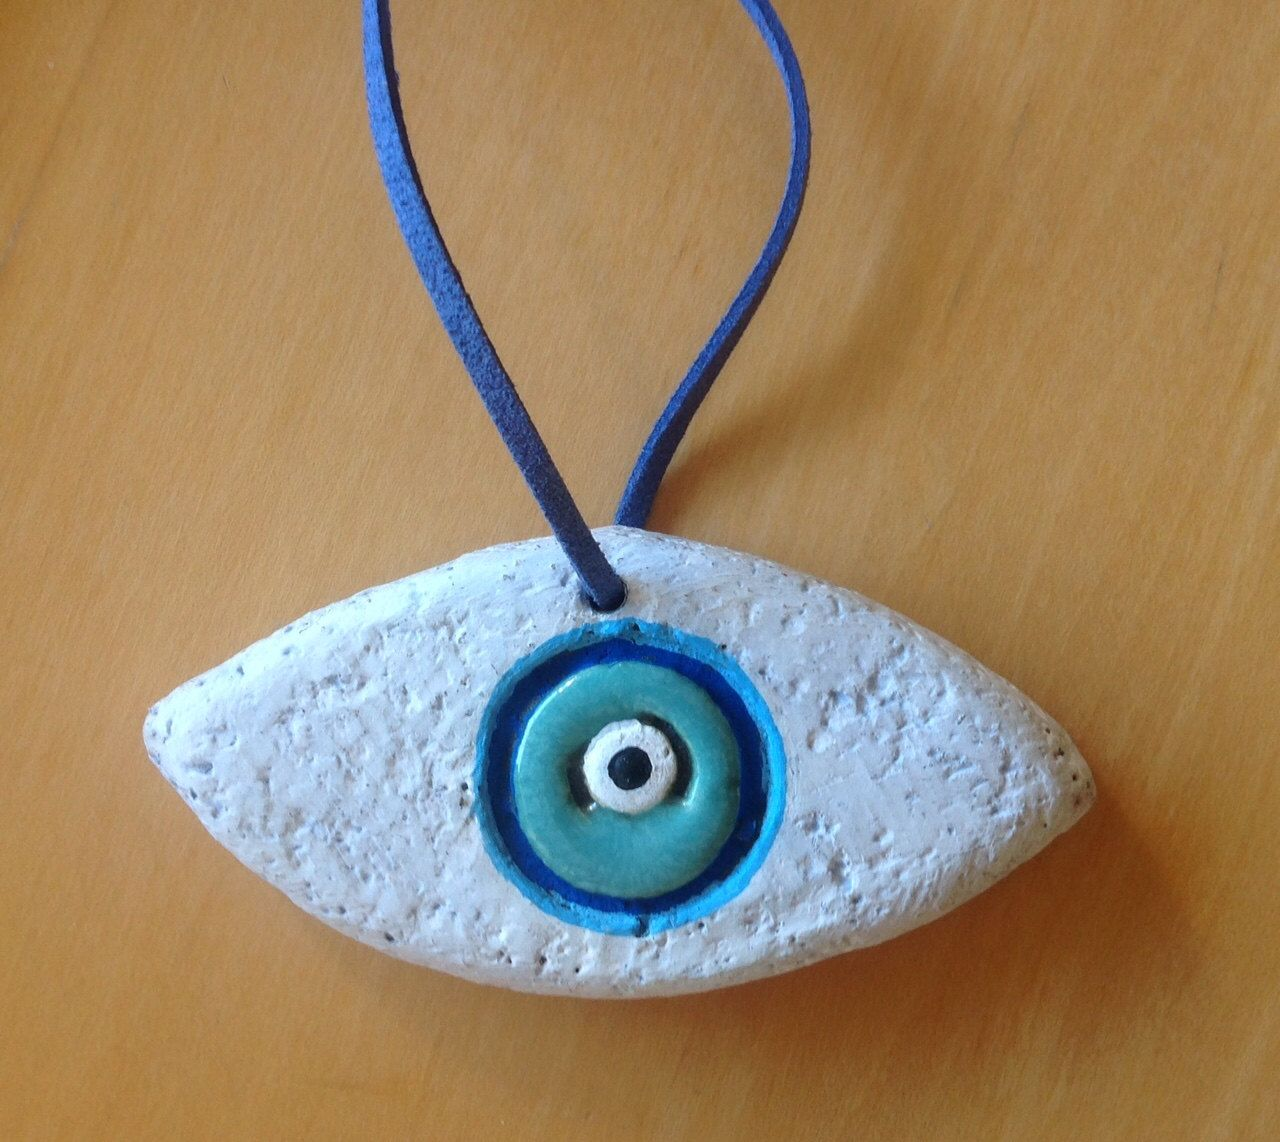 Evil eye wall hanging ornament home decor evil eye symbol or lucky evil eye wall hanging ornament home decor evil eye symbol or lucky charm for home amipublicfo Gallery